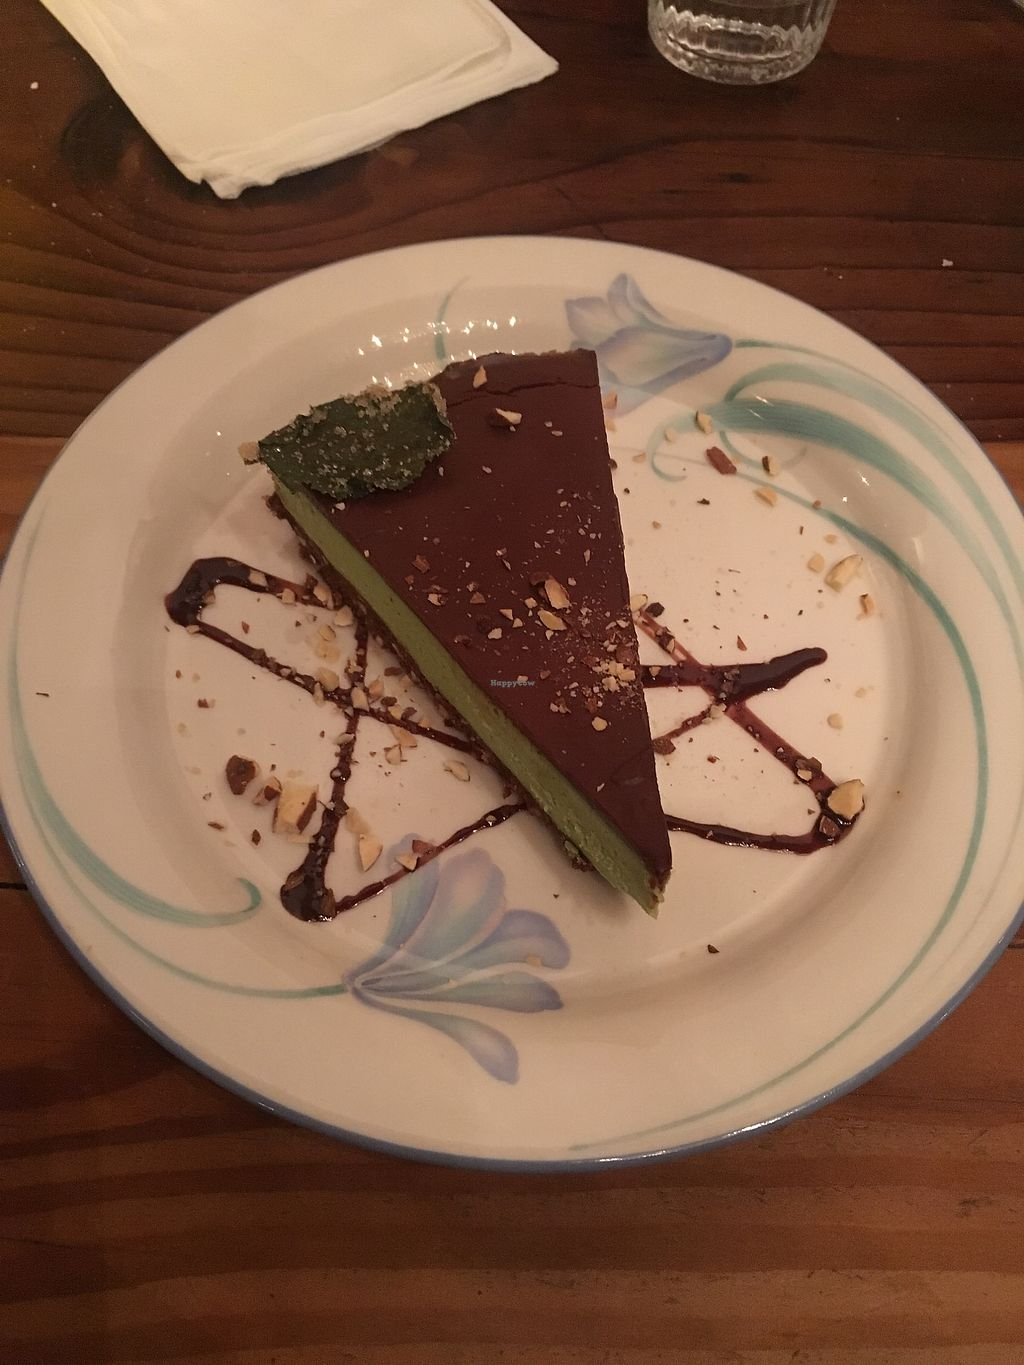 """Photo of Aviv  by <a href=""""/members/profile/770veg"""">770veg</a> <br/>mint/choco/avocado gnanche/mousse tart <br/> August 9, 2017  - <a href='/contact/abuse/image/93167/290673'>Report</a>"""